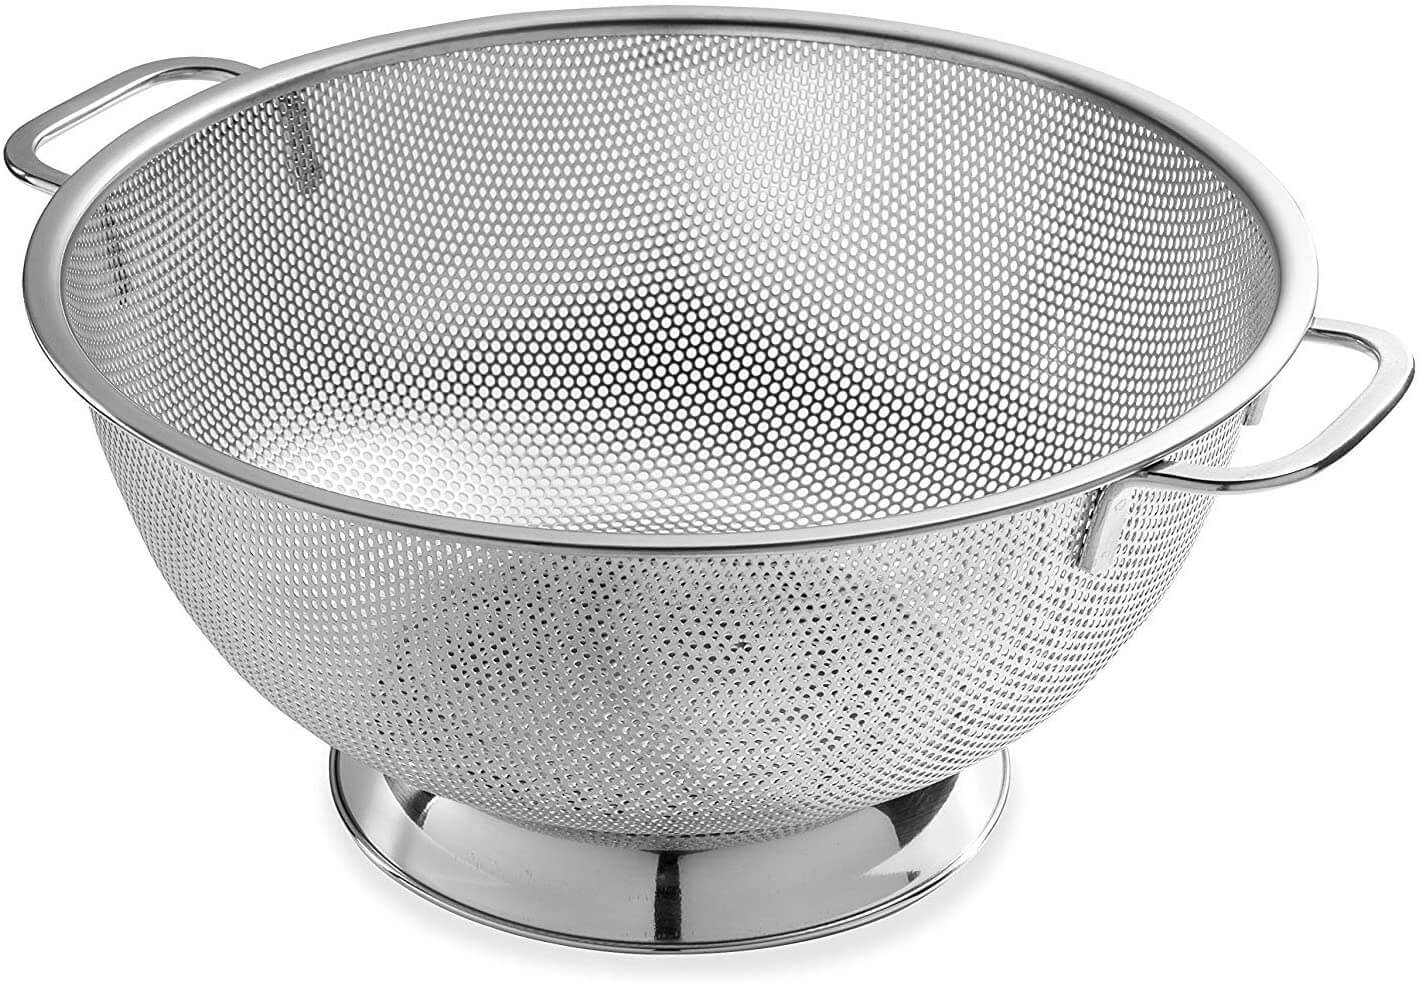 Bellemain Micro-perforated Stainless Steel Colander